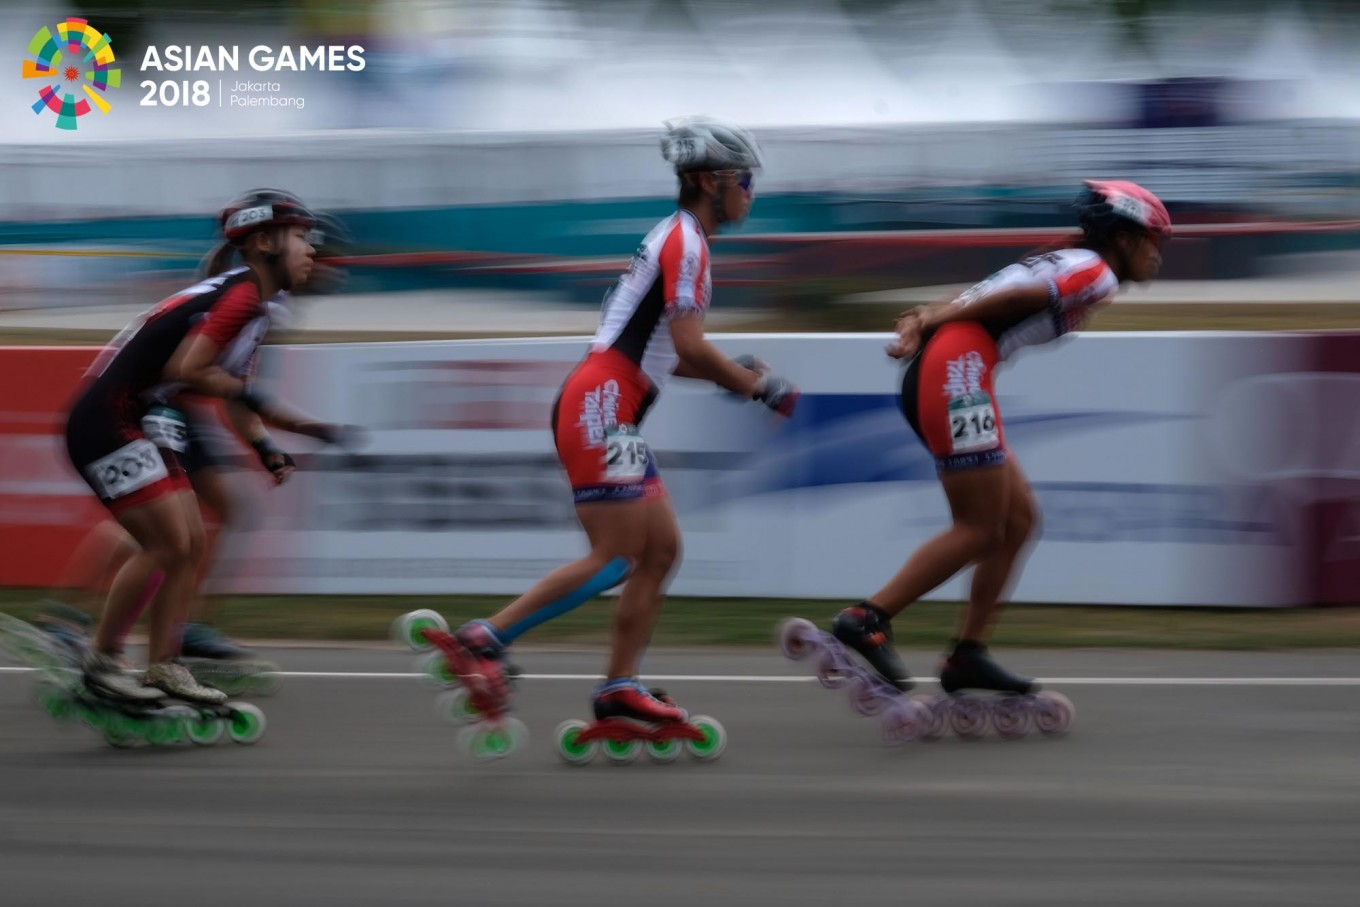 Roller skater Li Mengchu of Chinese Taipei races in the 20-kilometer women's rollerskating final at the 2018 Asian Games in Jakabaring Sport City in Palembang, South Sumatra, on August. 31. Li won the gold medal after setting a time of 44 minutes and 50.929 seconds. JP/Jerry Adiguna